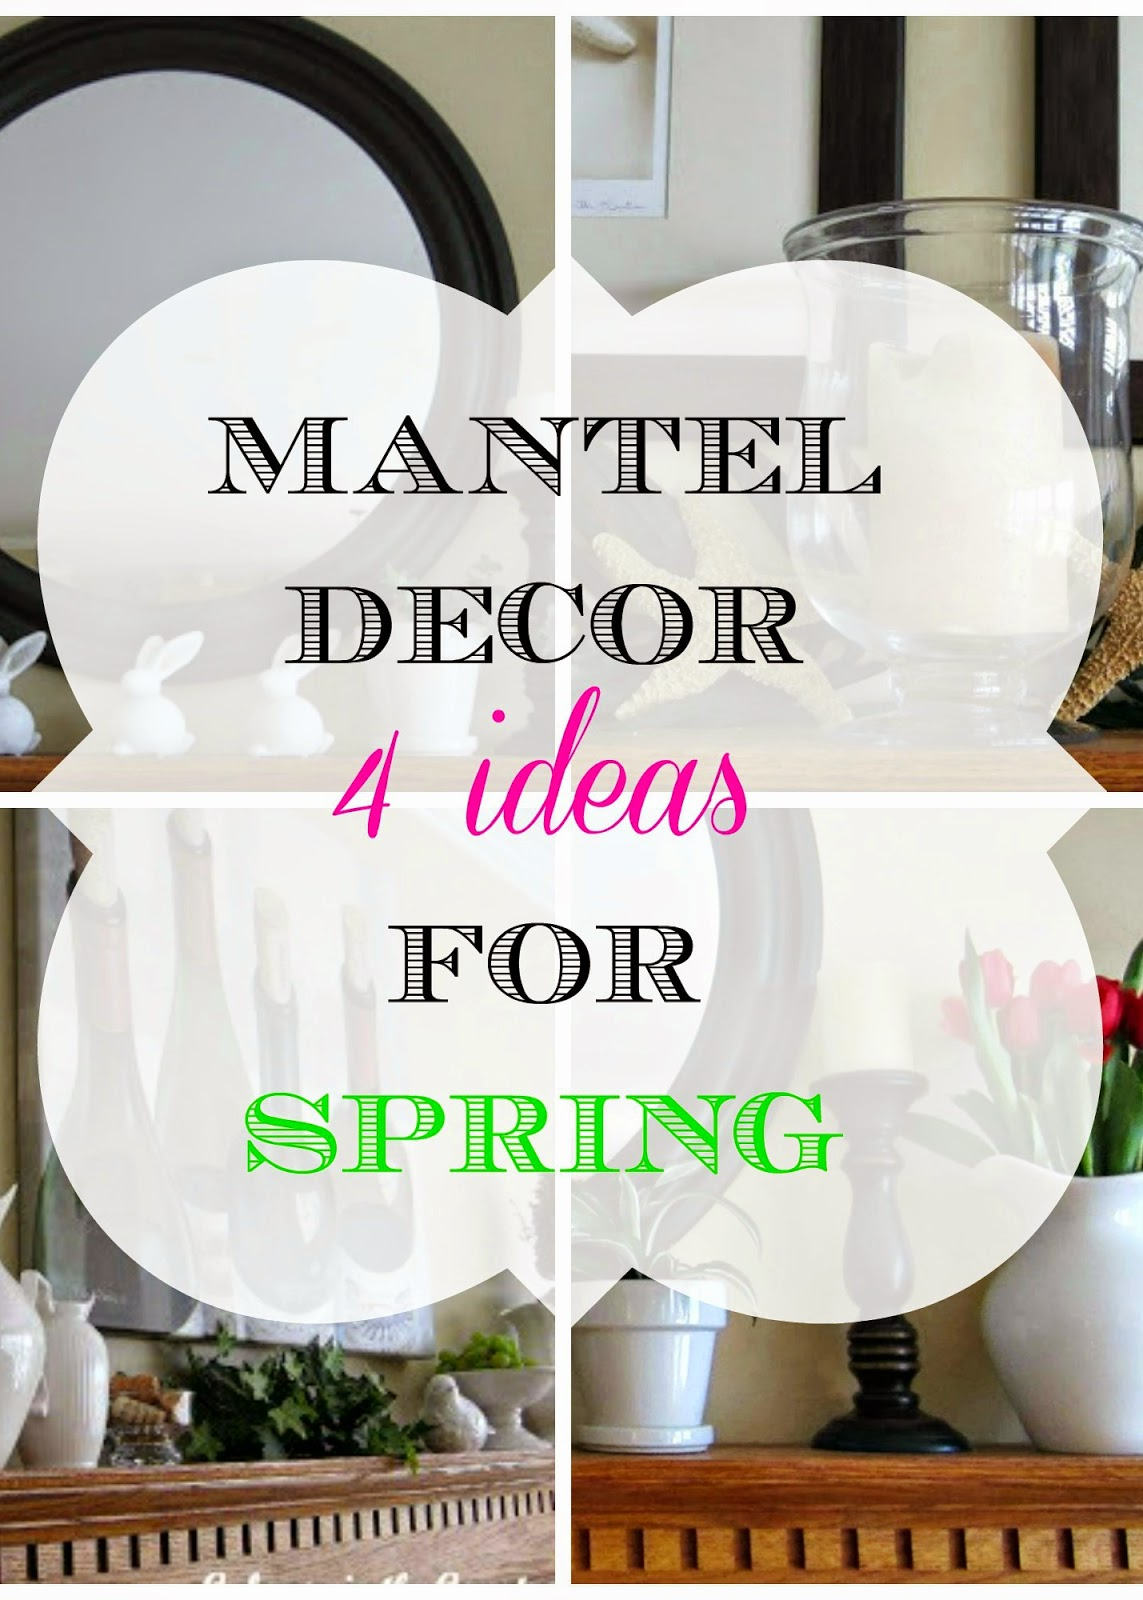 Mantel Decor - 4 Ideas for Spring